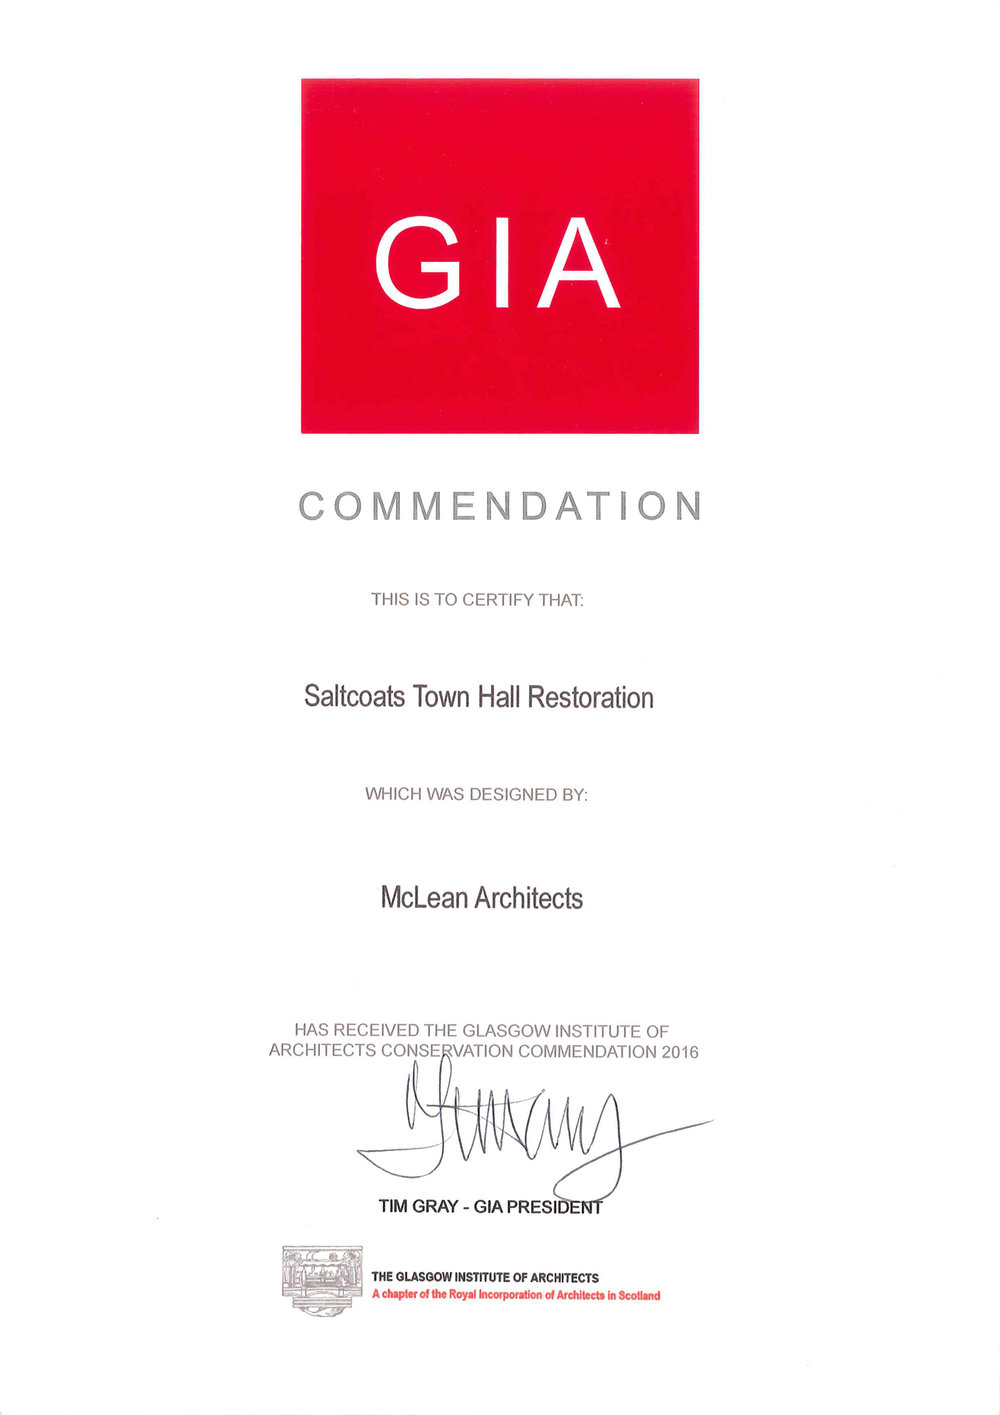 GIA Conservation Commendation 2016